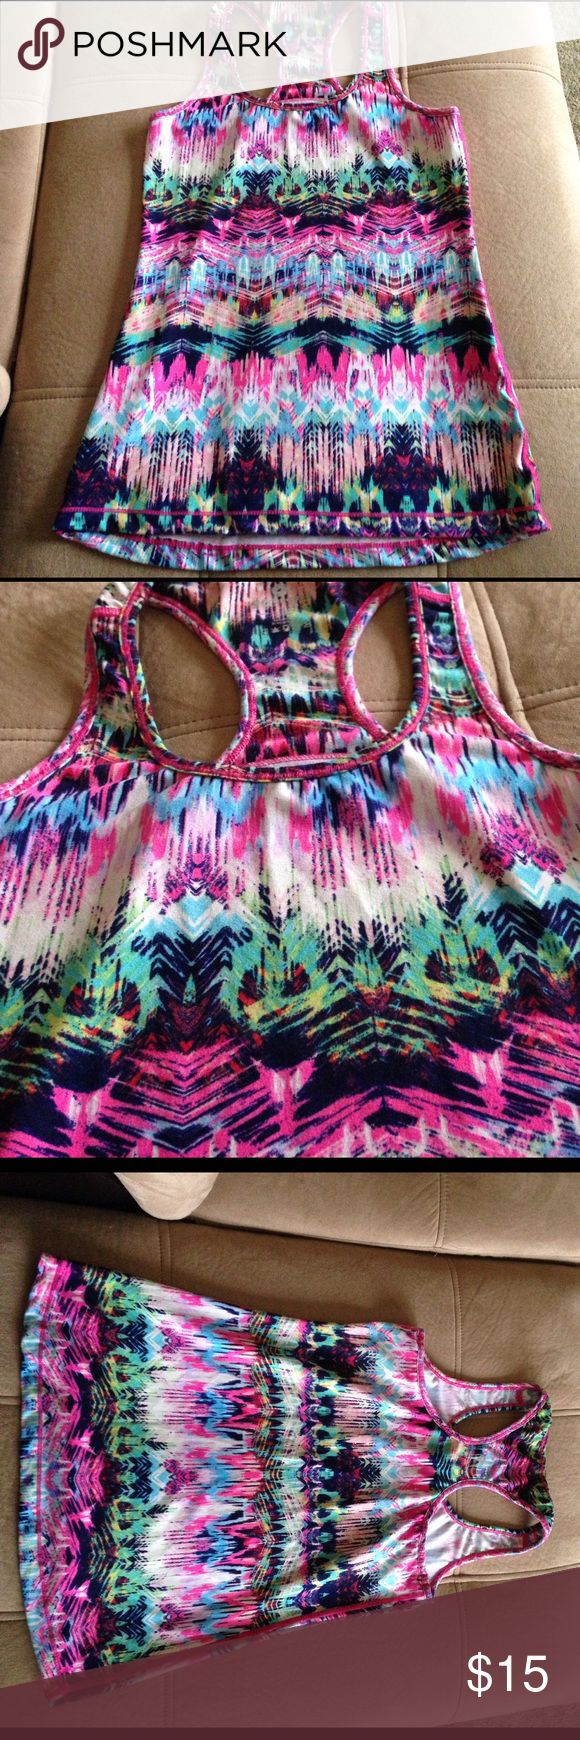 Workout tank! Size M workout tank in a fun and colorful print! 92% polyester 8% spandex! In excellent condition, hardly worn! 90 degrees by reflex Tops Tank Tops